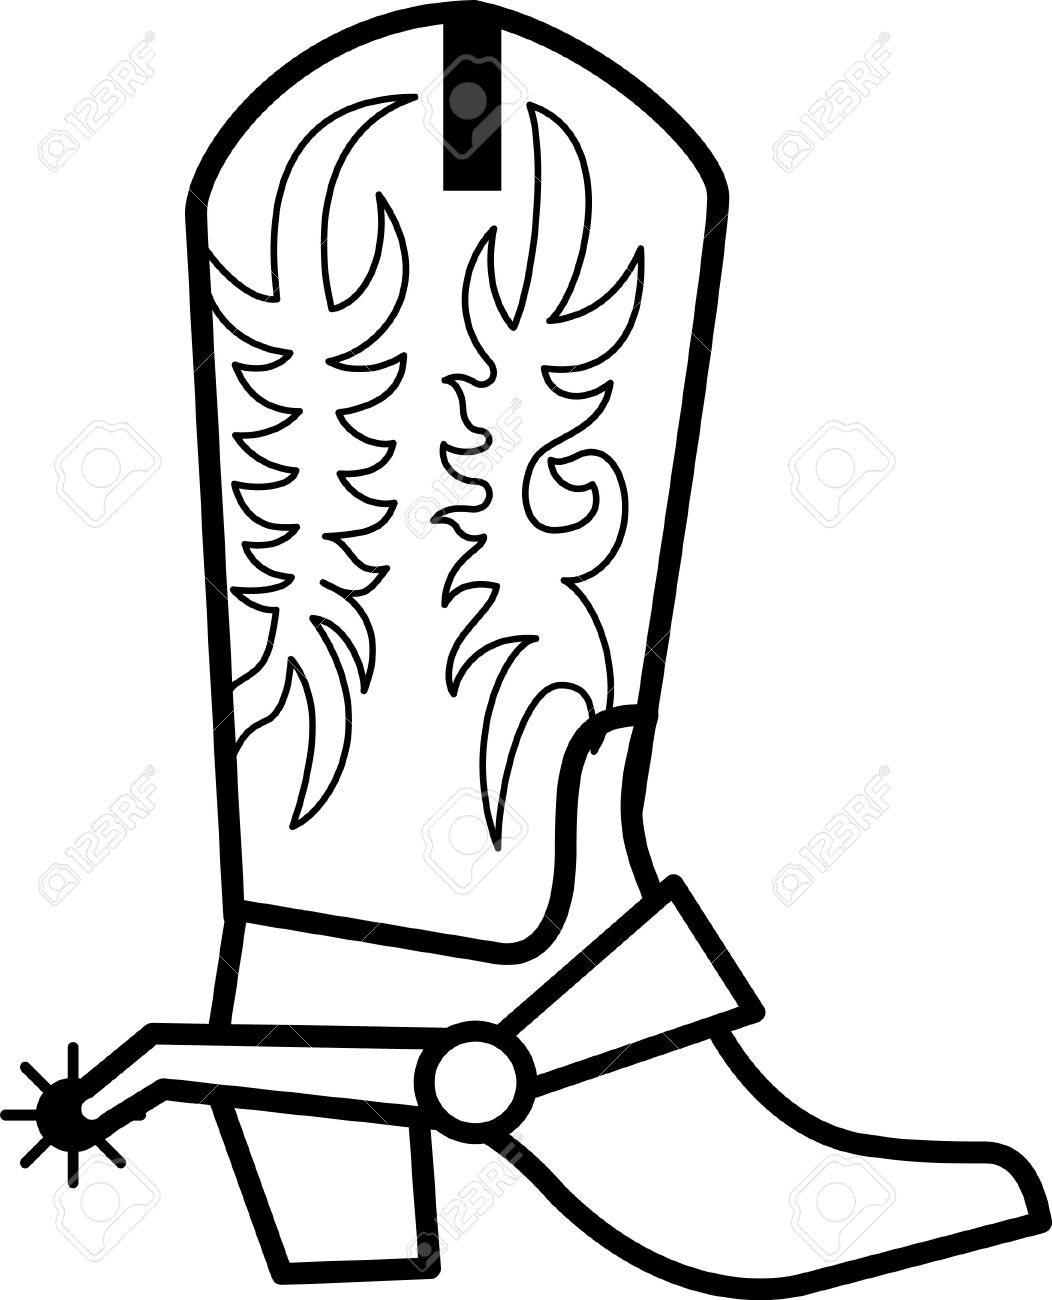 Coloring pictures of cowboy boots - Get Your Cowboy On With These Boots And Big Ol Spurs Clean Single Color